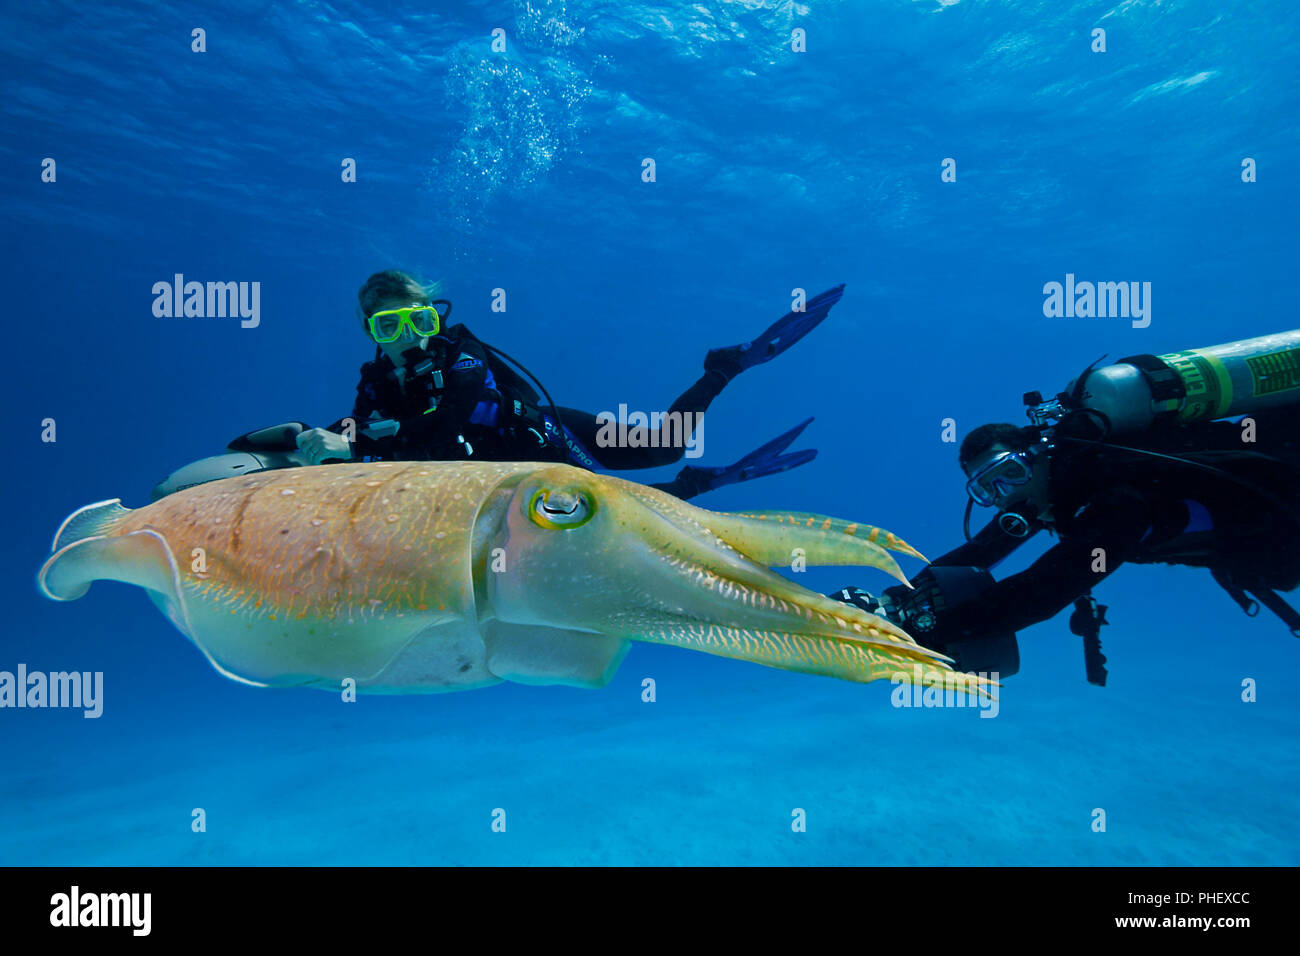 Divers (MR) on underwater scooters and a common cuttlefish, Sepia officinalis, in Palau, Micronesia. Stock Photo